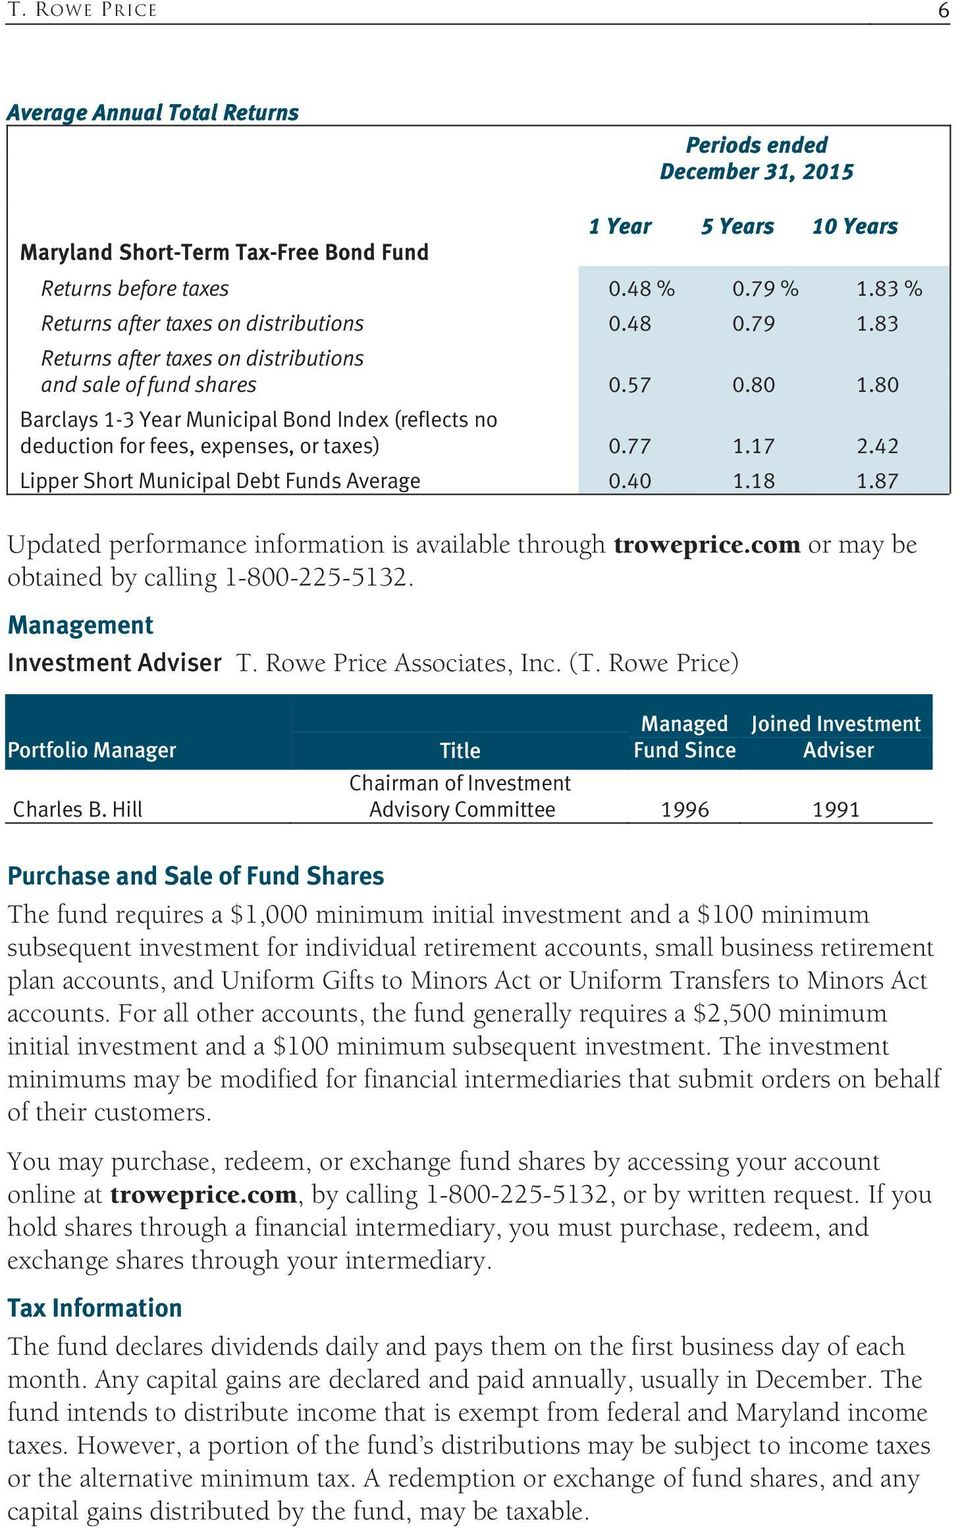 80 Barclays 1-3 Year Municipal Bond Index (reflects no deduction for fees, expenses, or taxes) 0.77 1.17 2.42 Lipper Short Municipal Debt Funds Average 0.40 1.18 1.